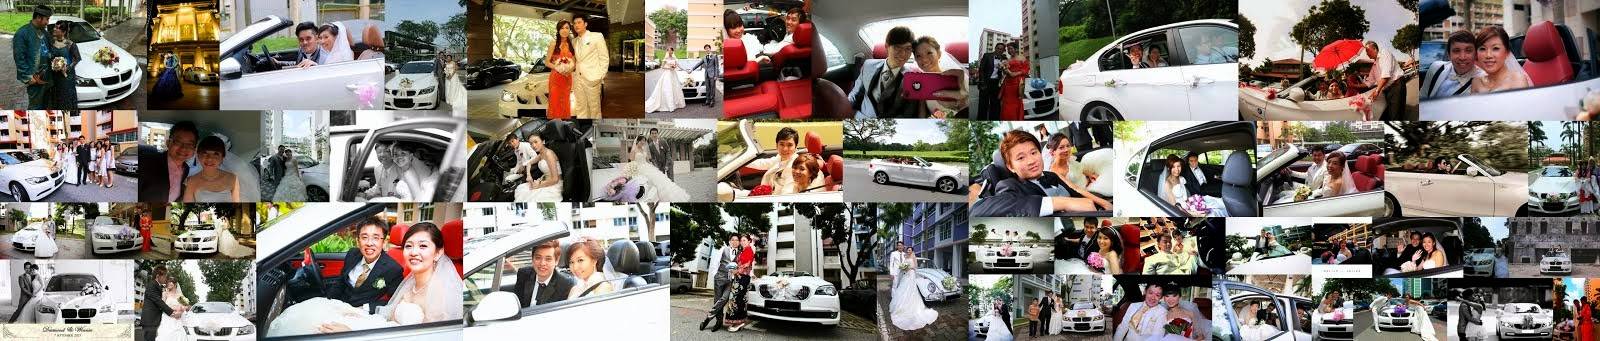 WhiteWeddingCars